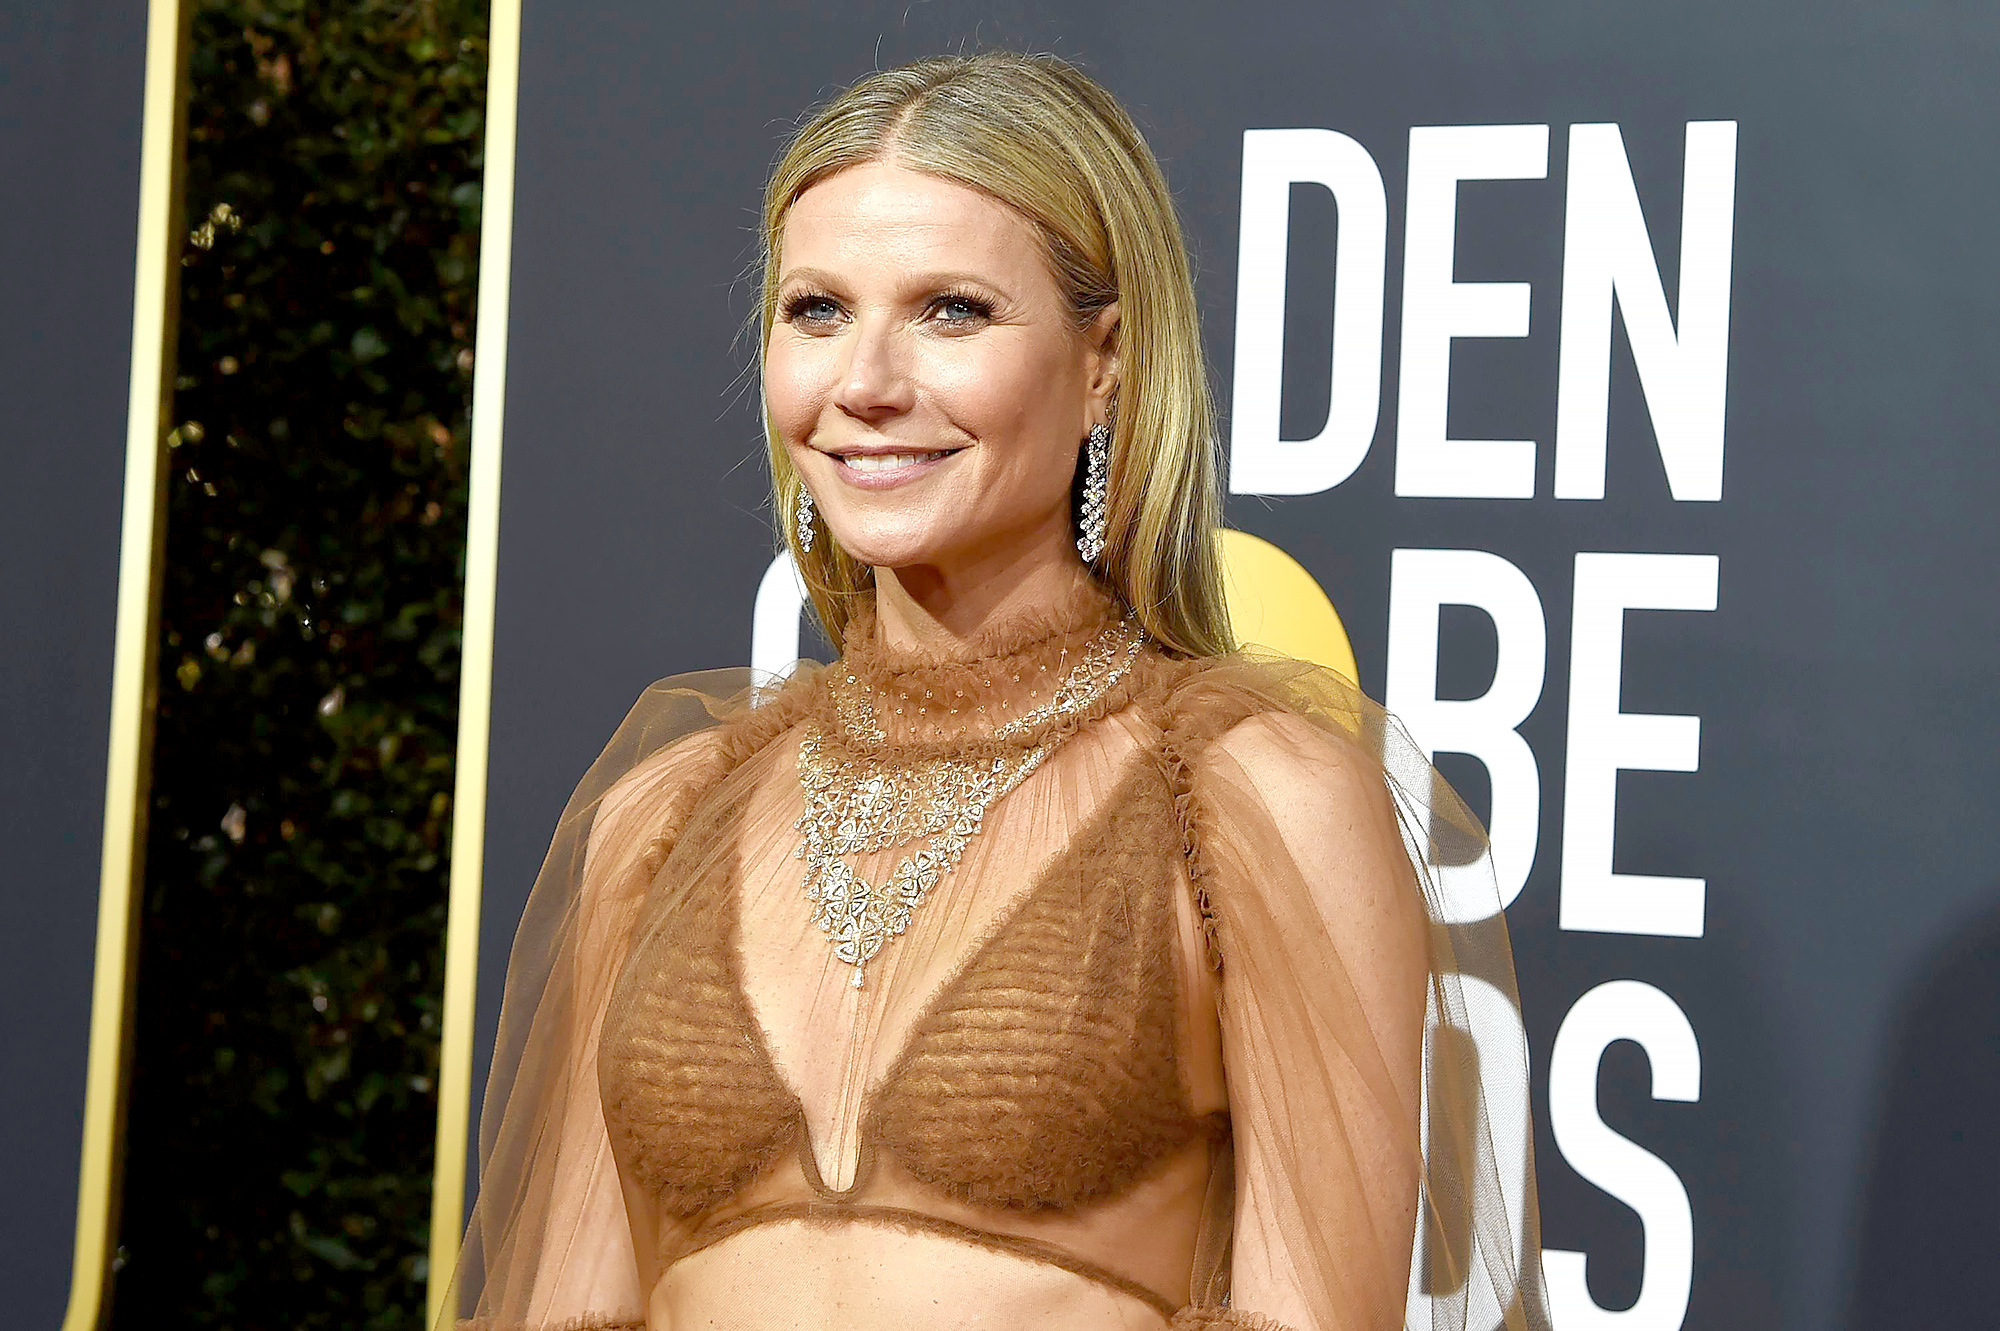 Gwyneth Paltrow Says She's 'Semi-Retired' While Supporting 'The Politician' at Golden Globes 2020